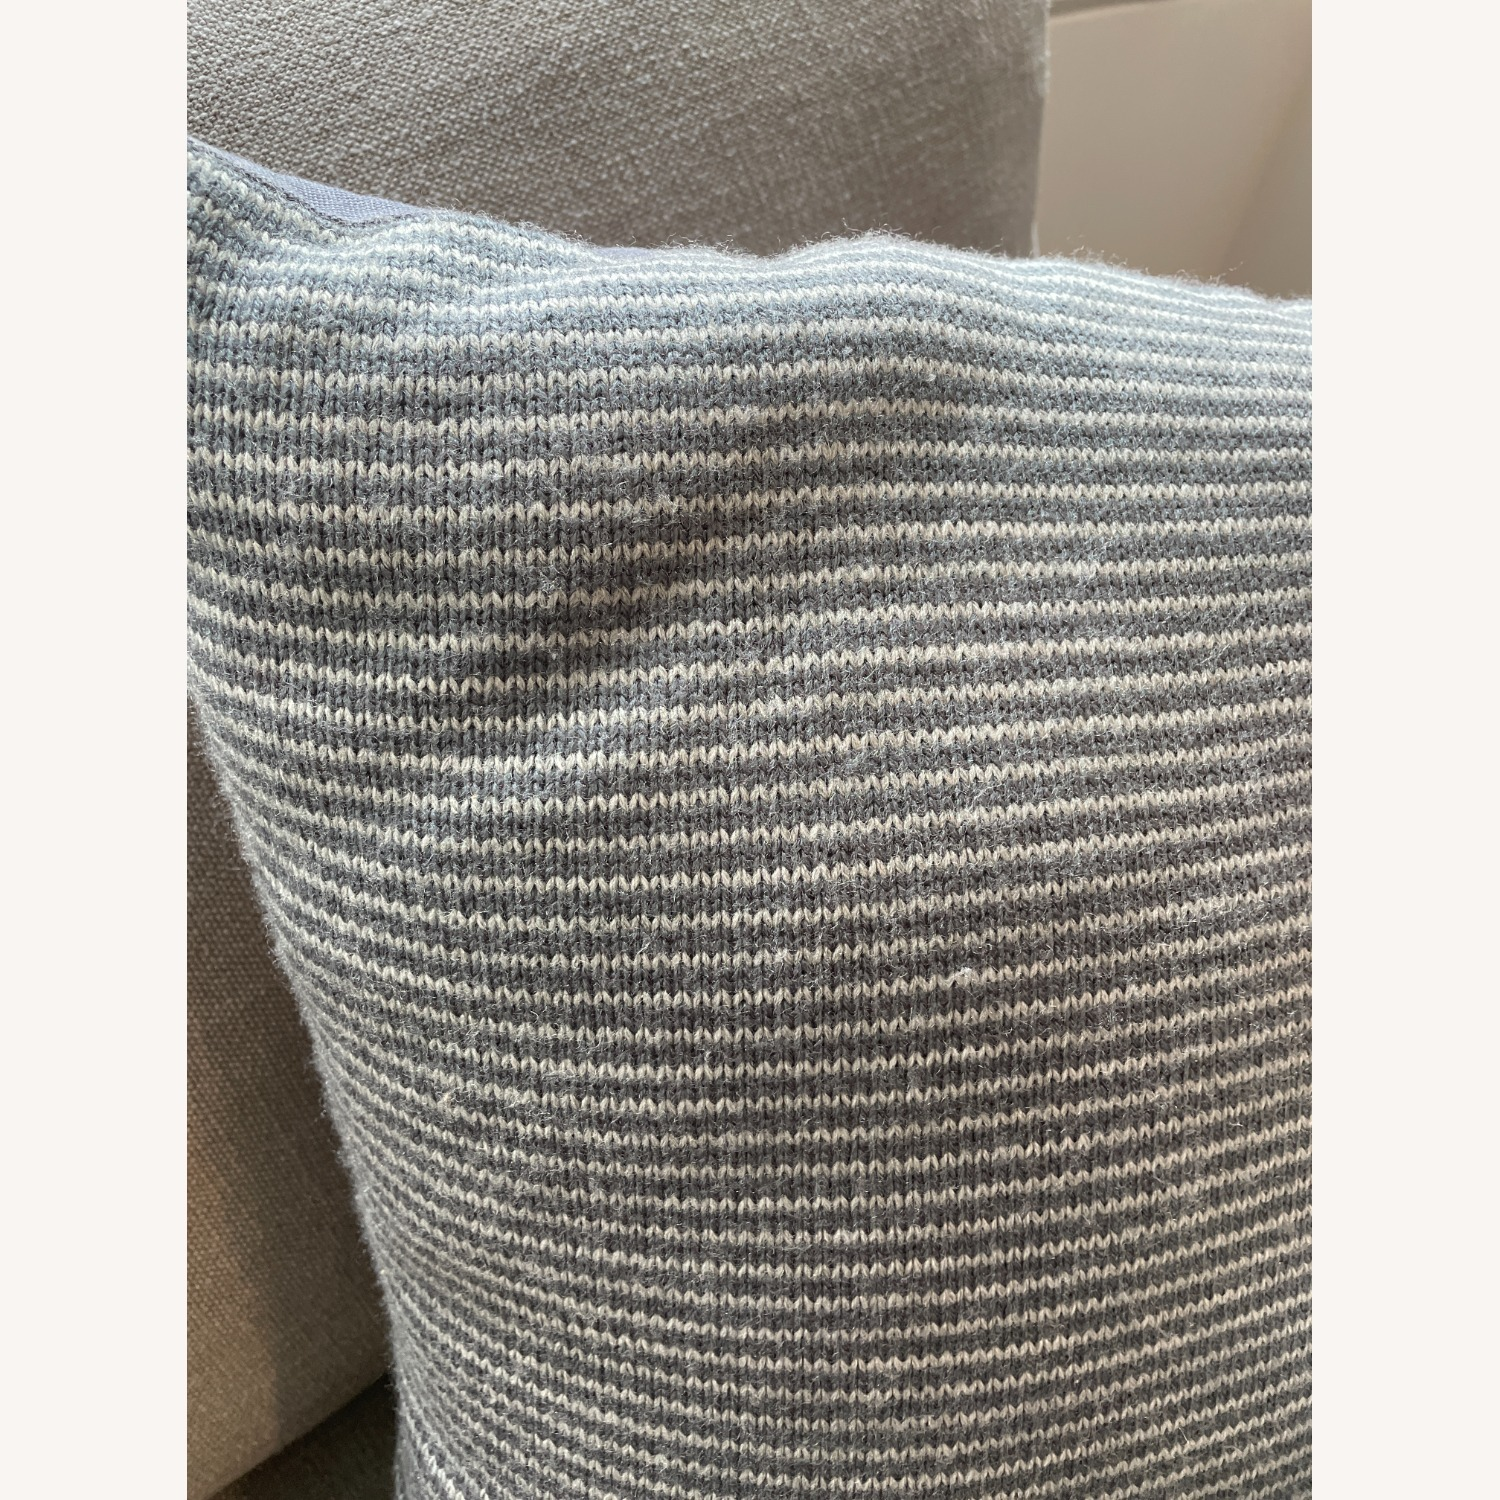 Kenneth Cole Home Set of Pillows - image-1